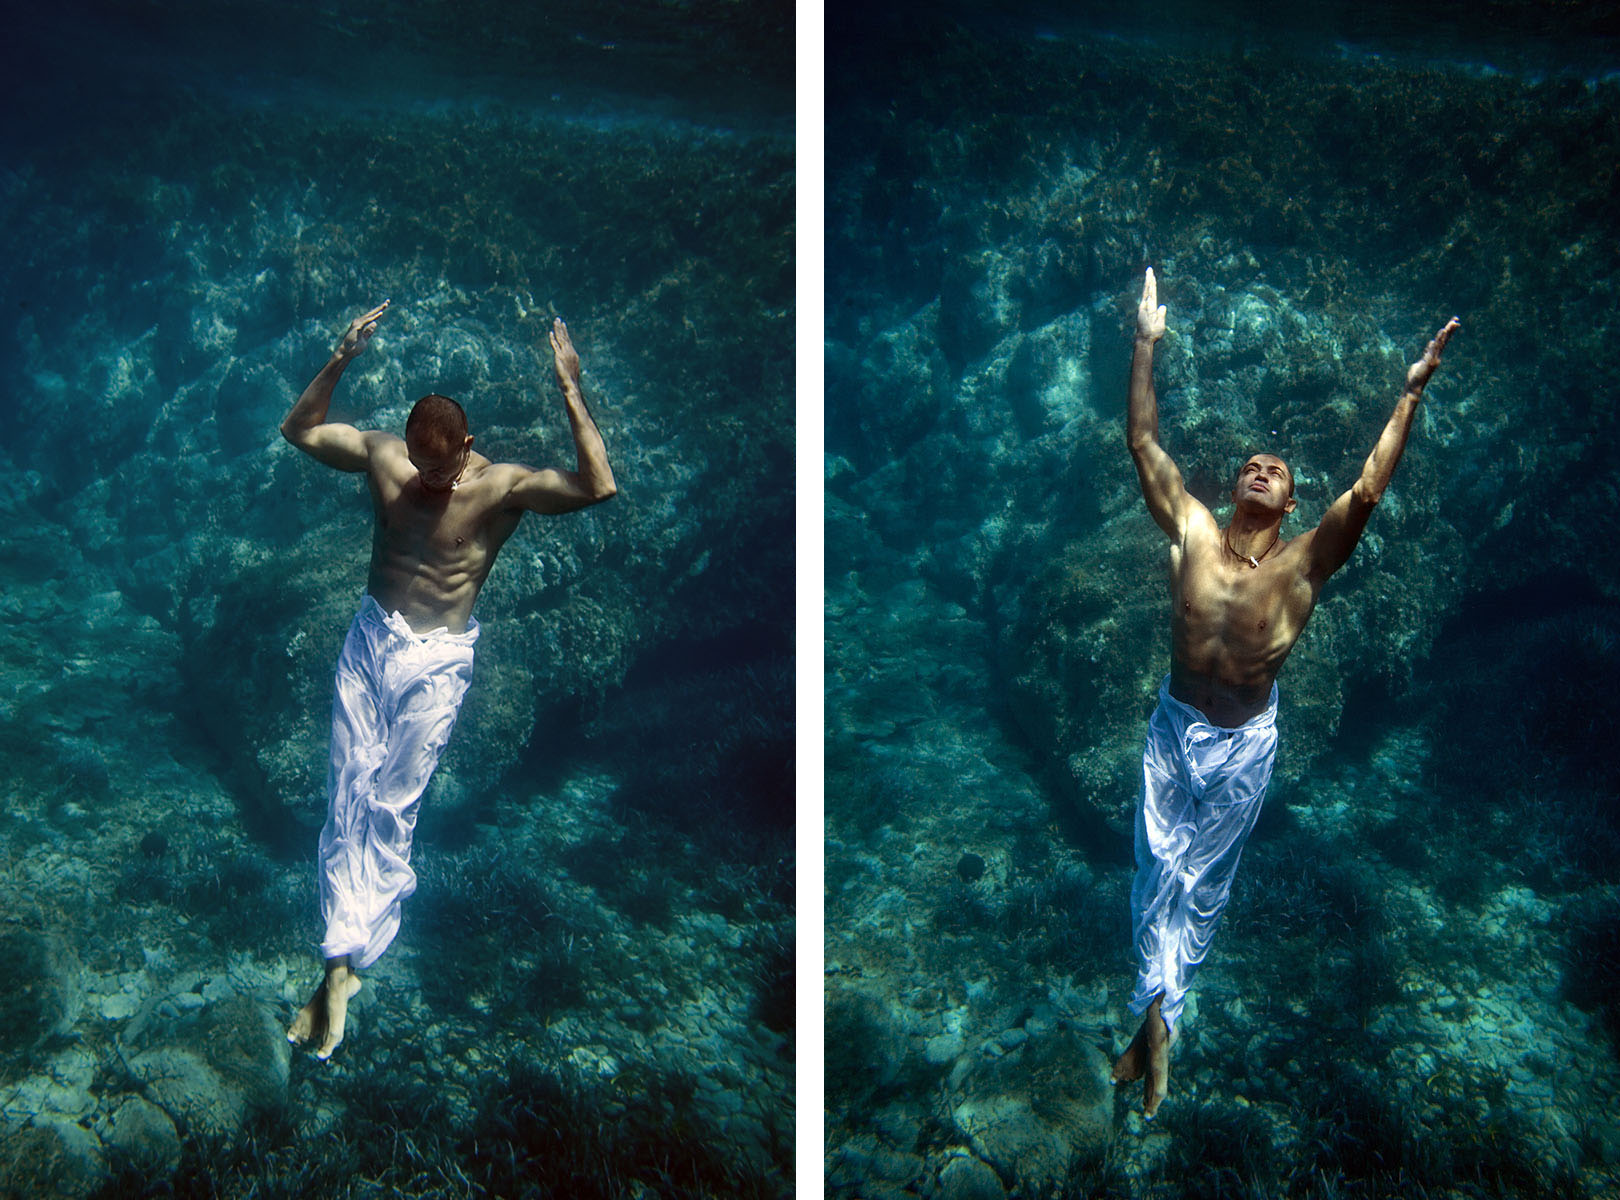 underwater-duo-fashion-meditation-patrick-musimu